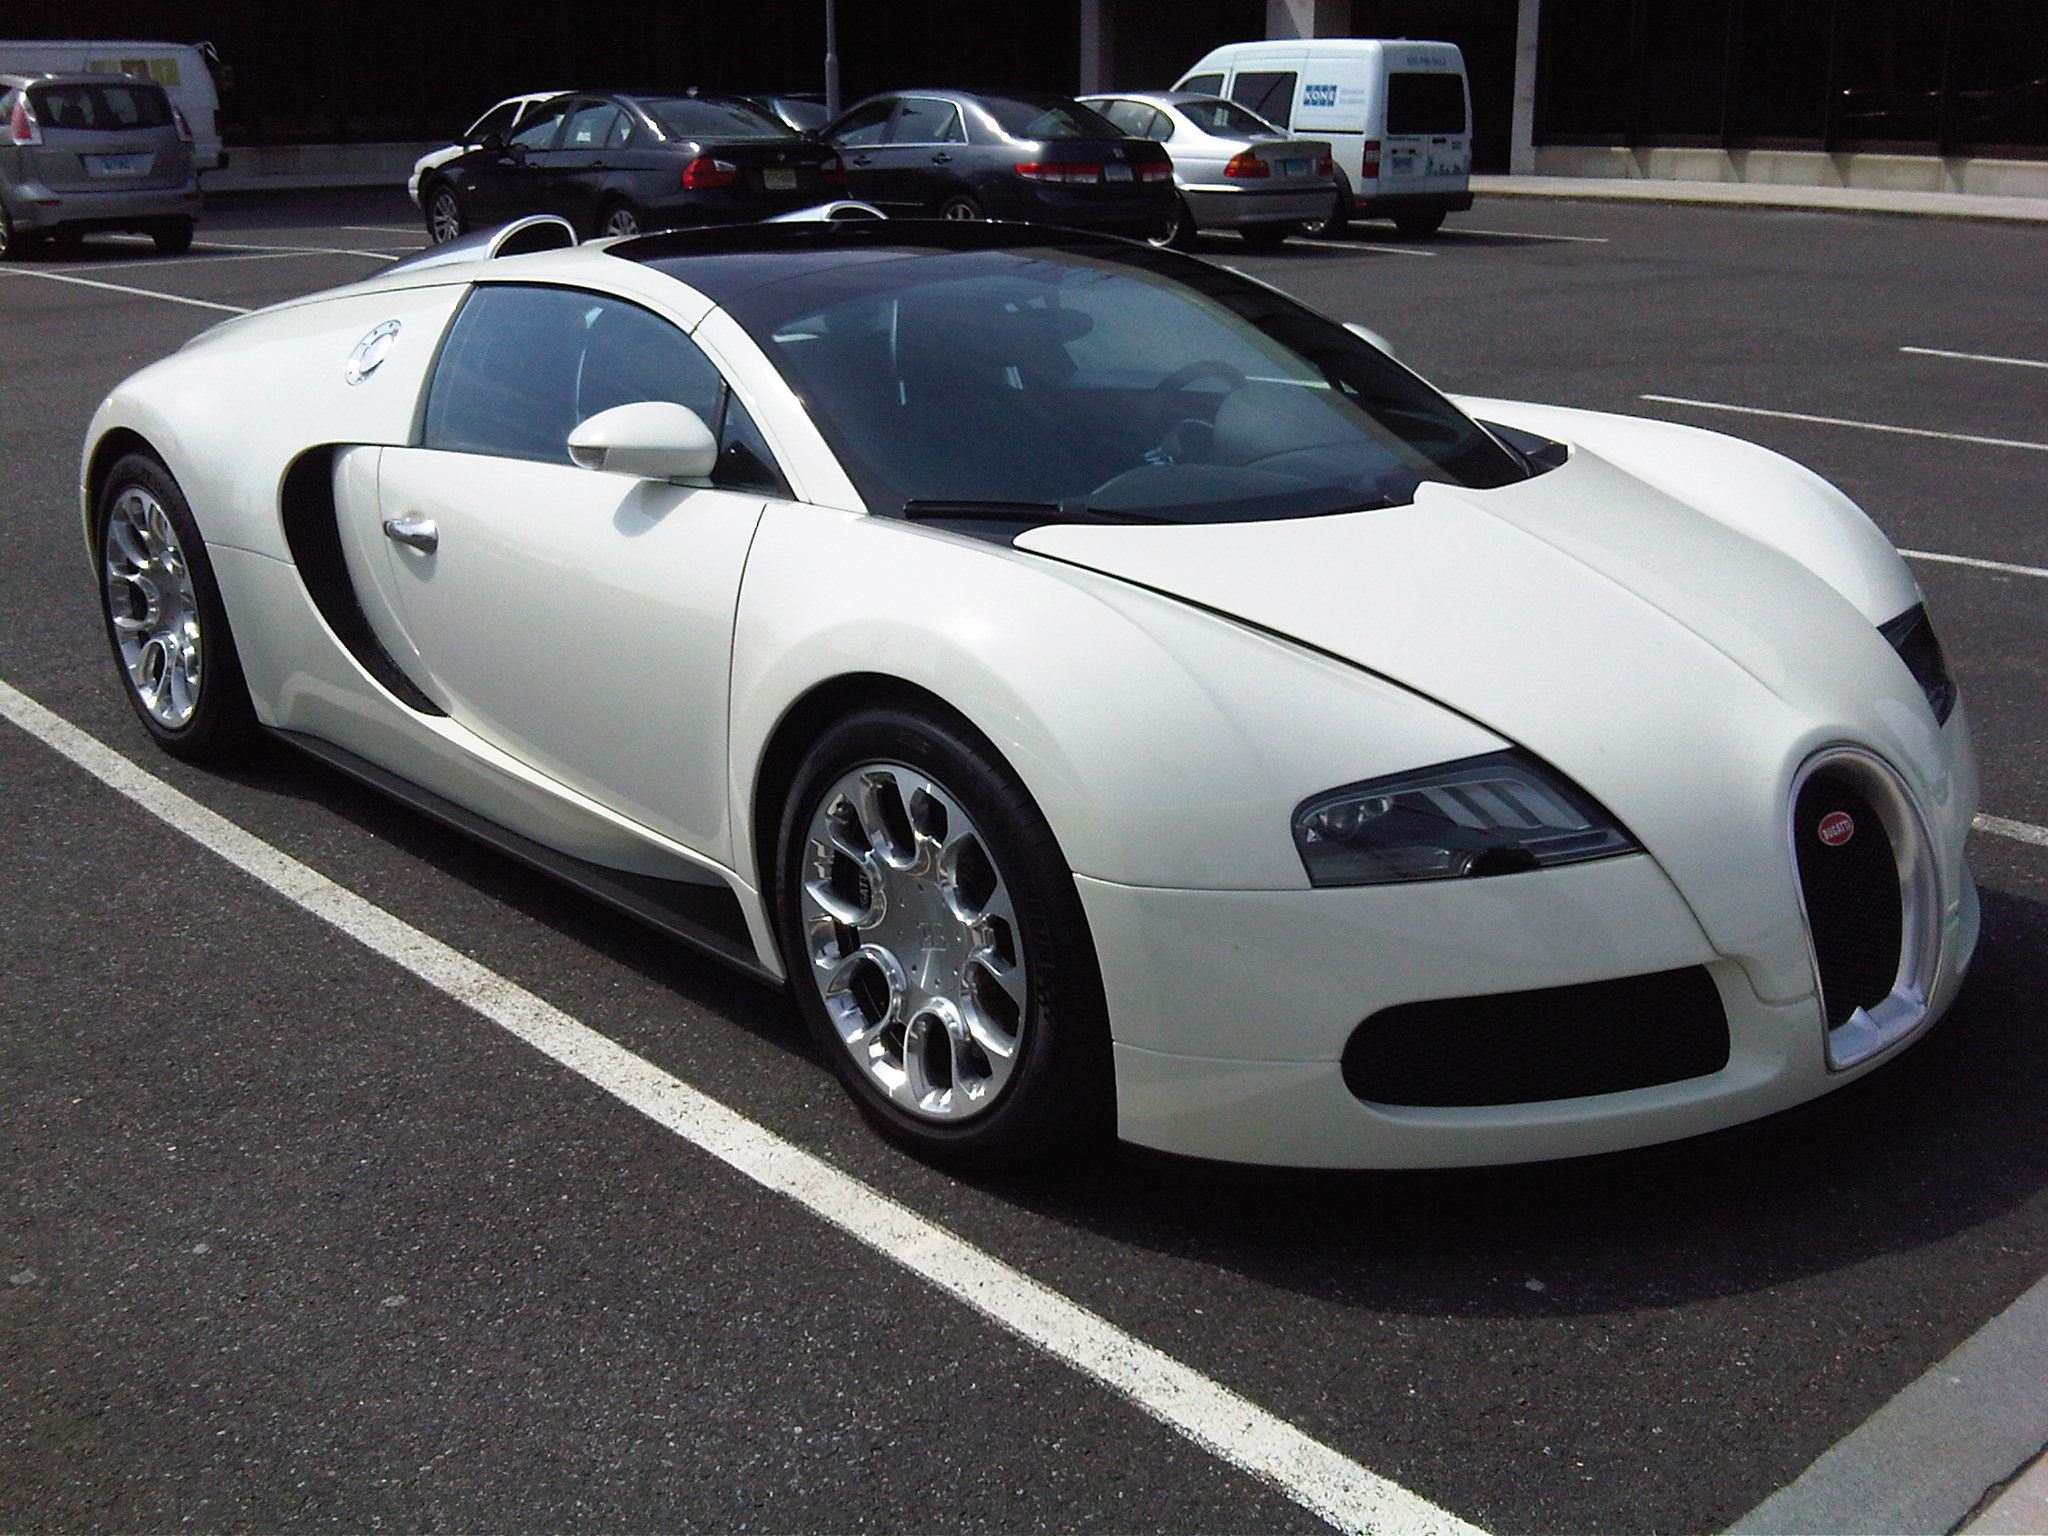 IMG00977-20110415-1145-1 Exciting Bugatti Veyron Grand Sport Vitesse Mpg Cars Trend